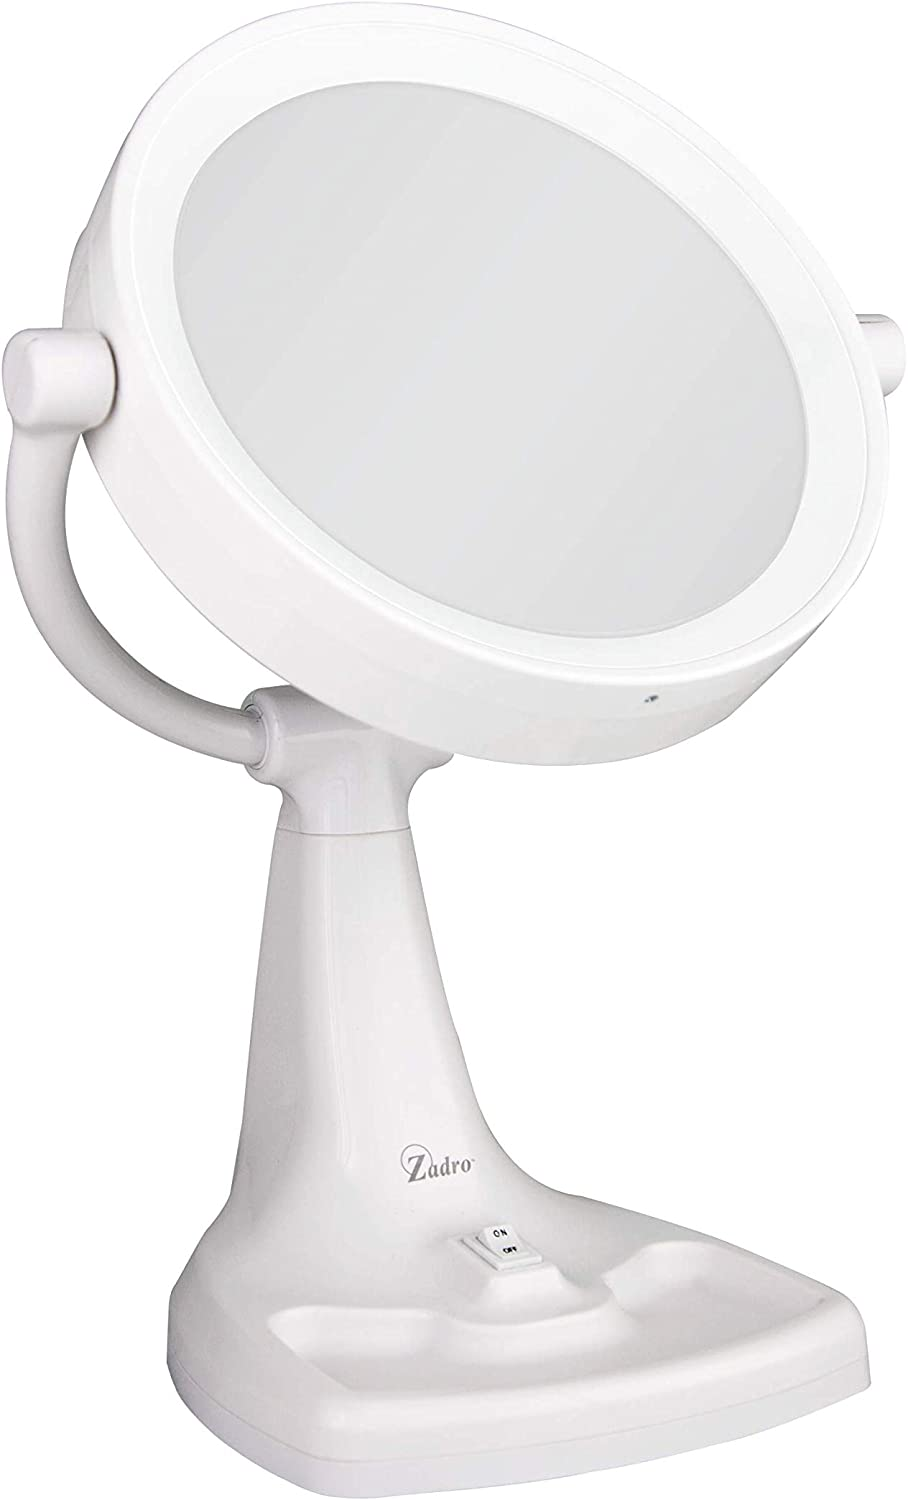 Bright White MAXT110RS 1 Count Zadro Products Zadro Max Bright Sunlight Dual-Sided 10x//1x Magnification Fluorescent Vanity Makeup Mirror in Bright White